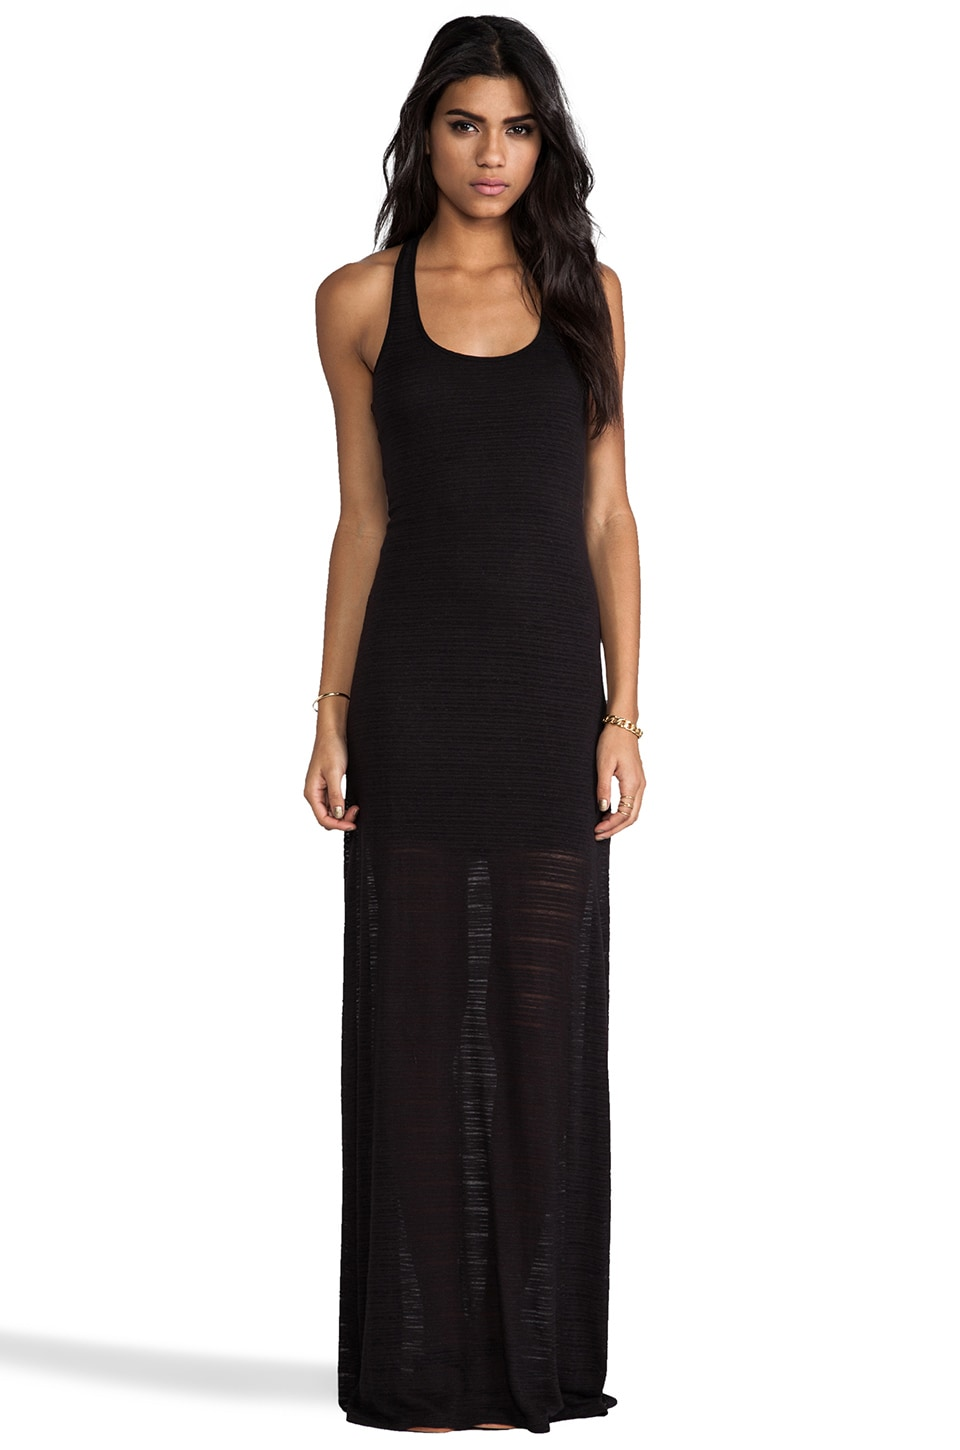 Bella Luxx Stripe Racerback Maxi Dress in Black